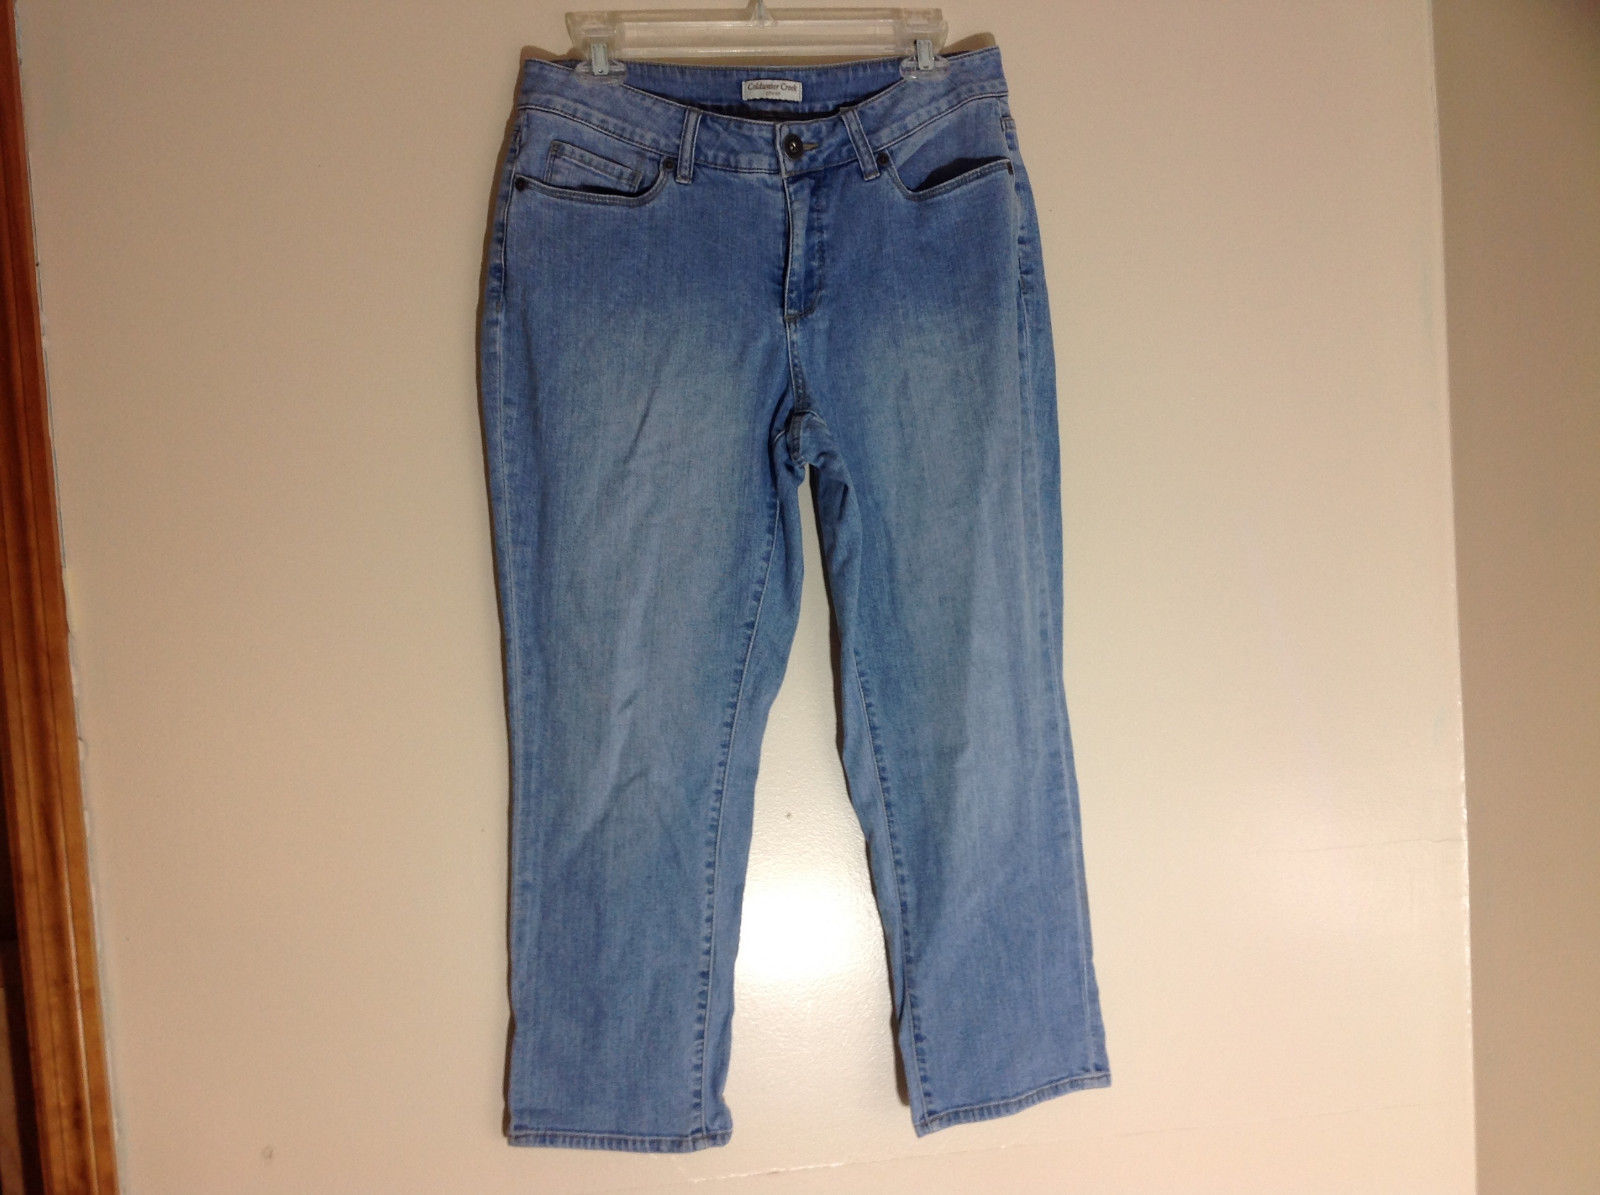 Coldwater Creek Light Wash Capri Jeans 5 Pockets Size 10